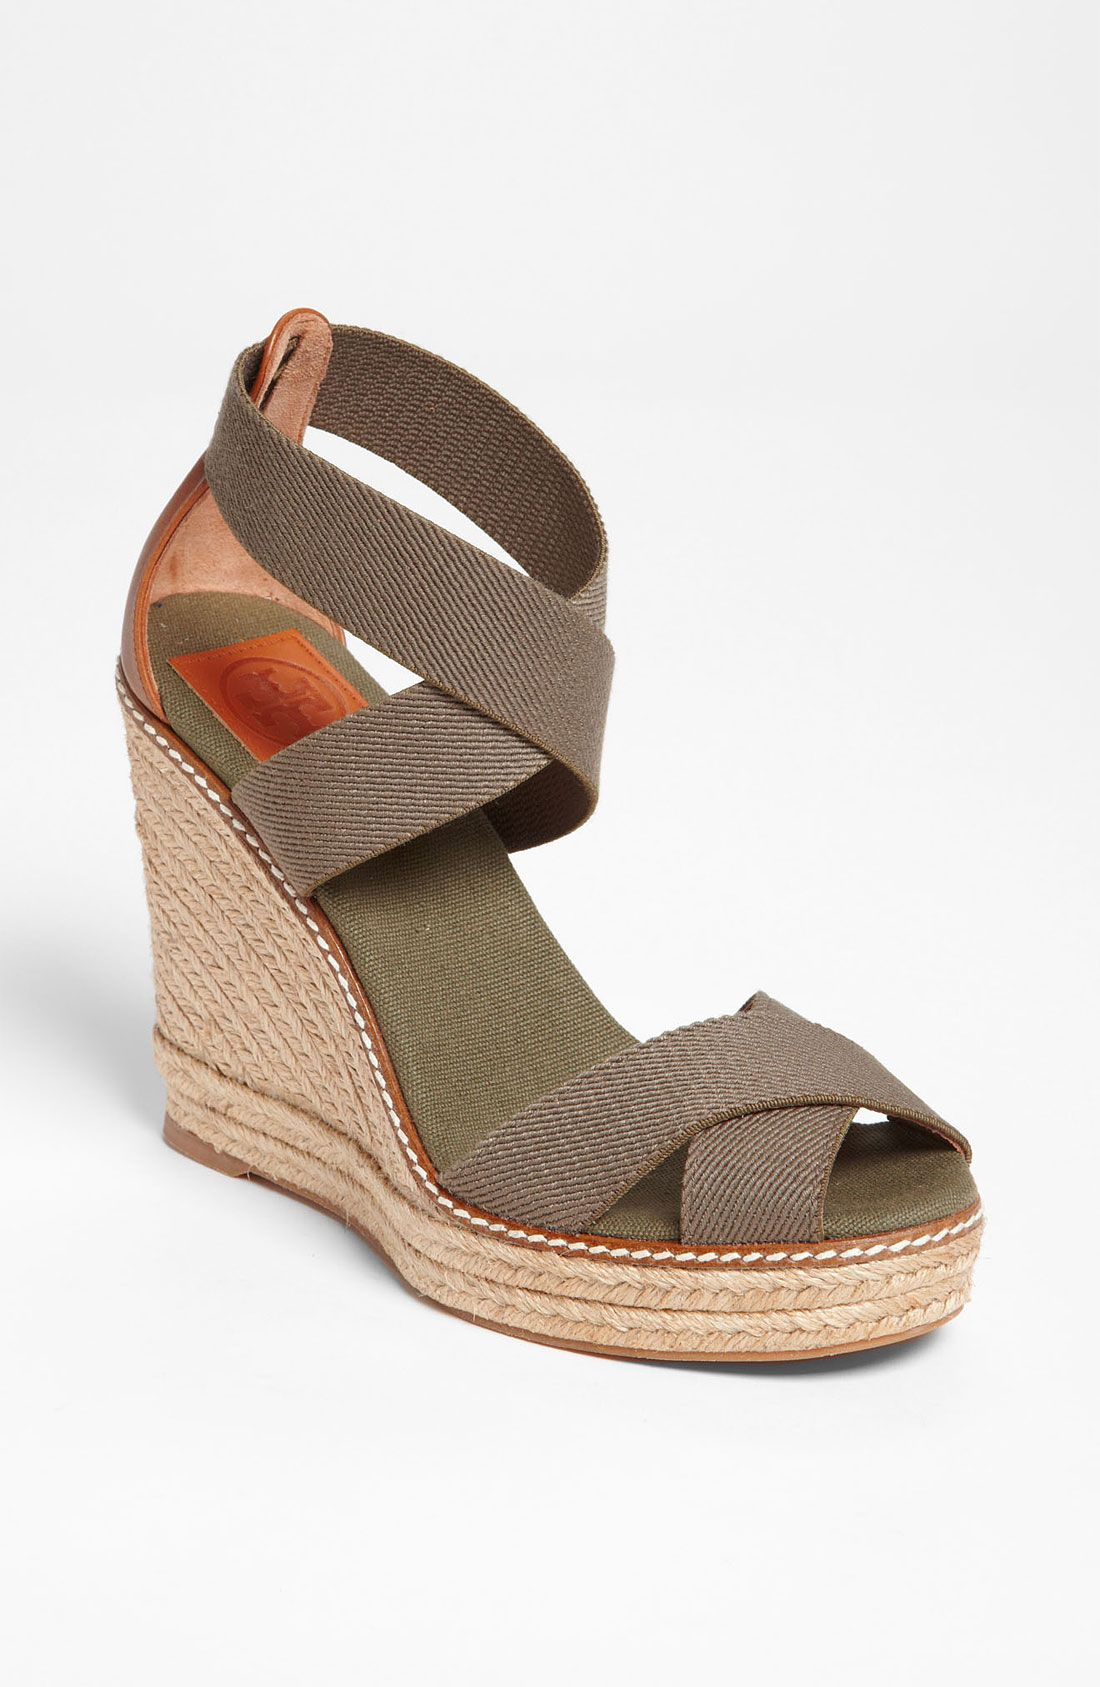 Tory Burch Adonis Wedge Espadrille in Green (olive almond) | Lyst